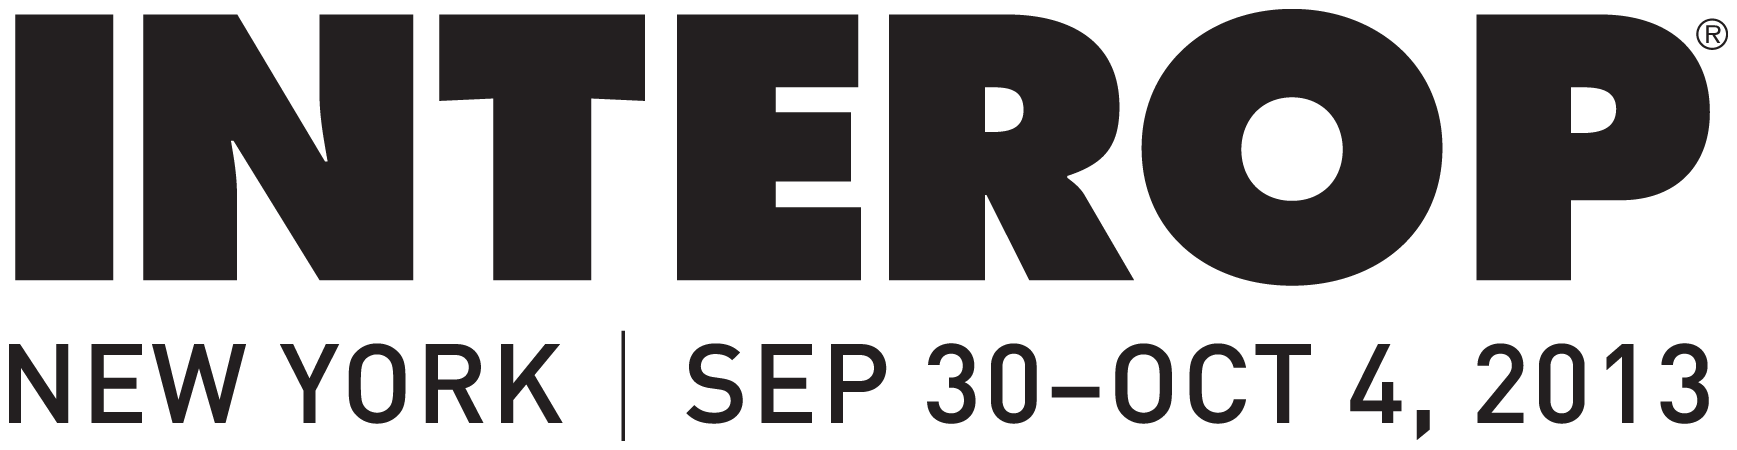 Interop New York, Sept. 30 - Oct.1